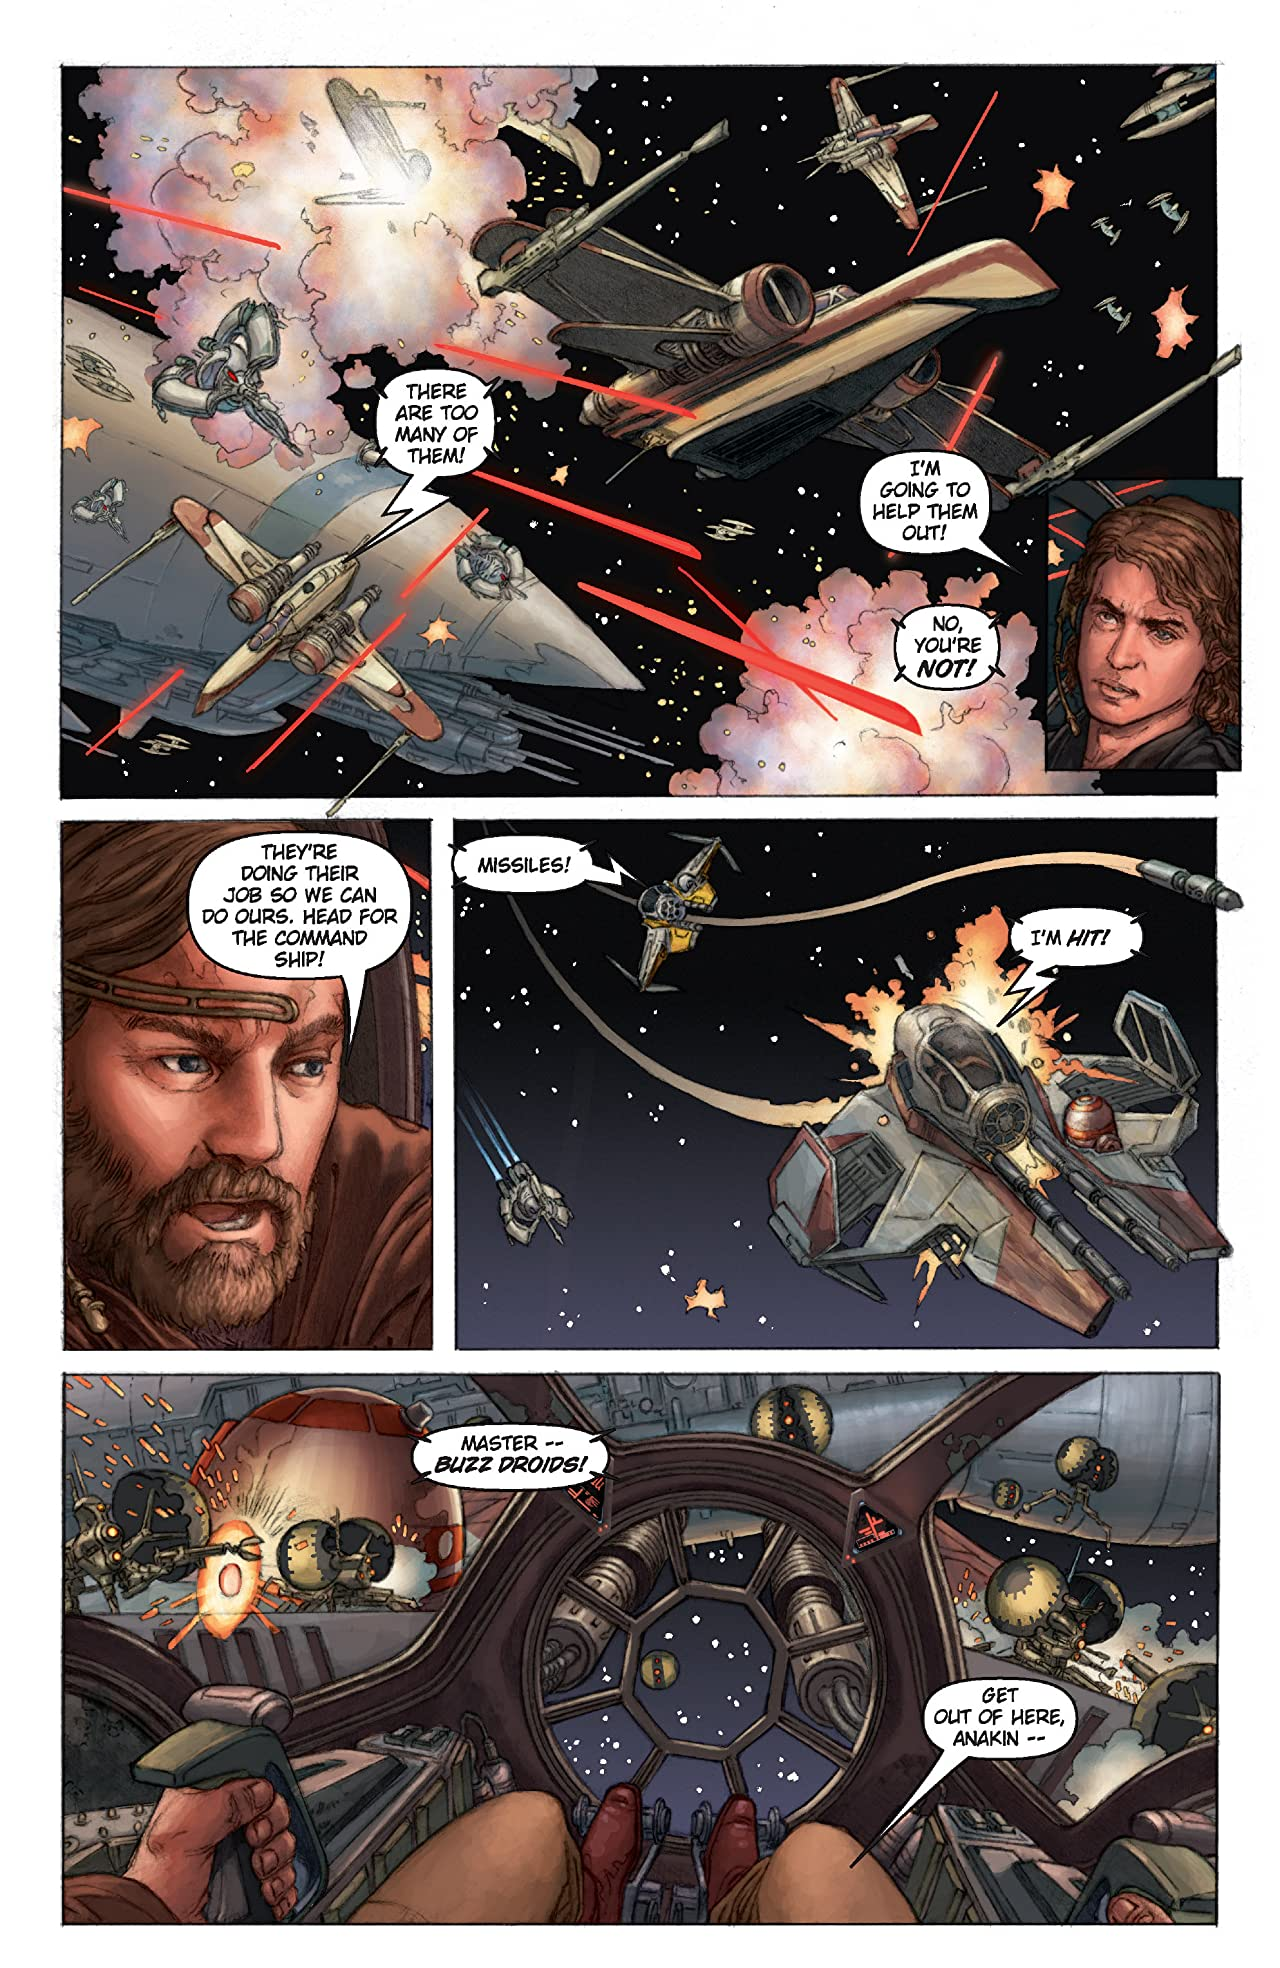 Star Wars: Episode III - Revenge of the Sith (2005) #1 (of 4)